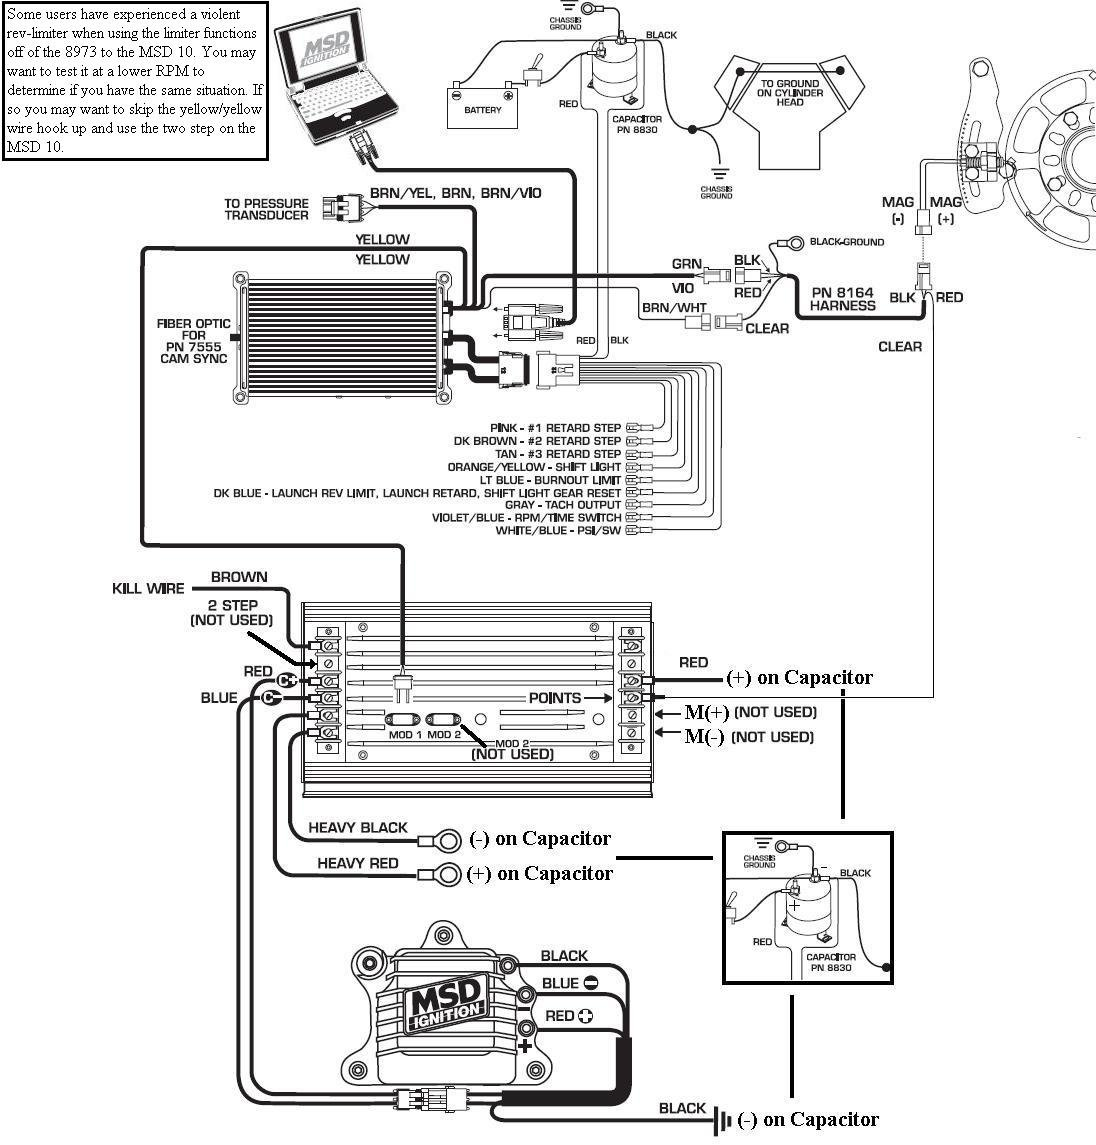 Blog diagrams and drawings 8973 8973 to msd 10 8973 to msd 10 this diagram illustrates how to wire